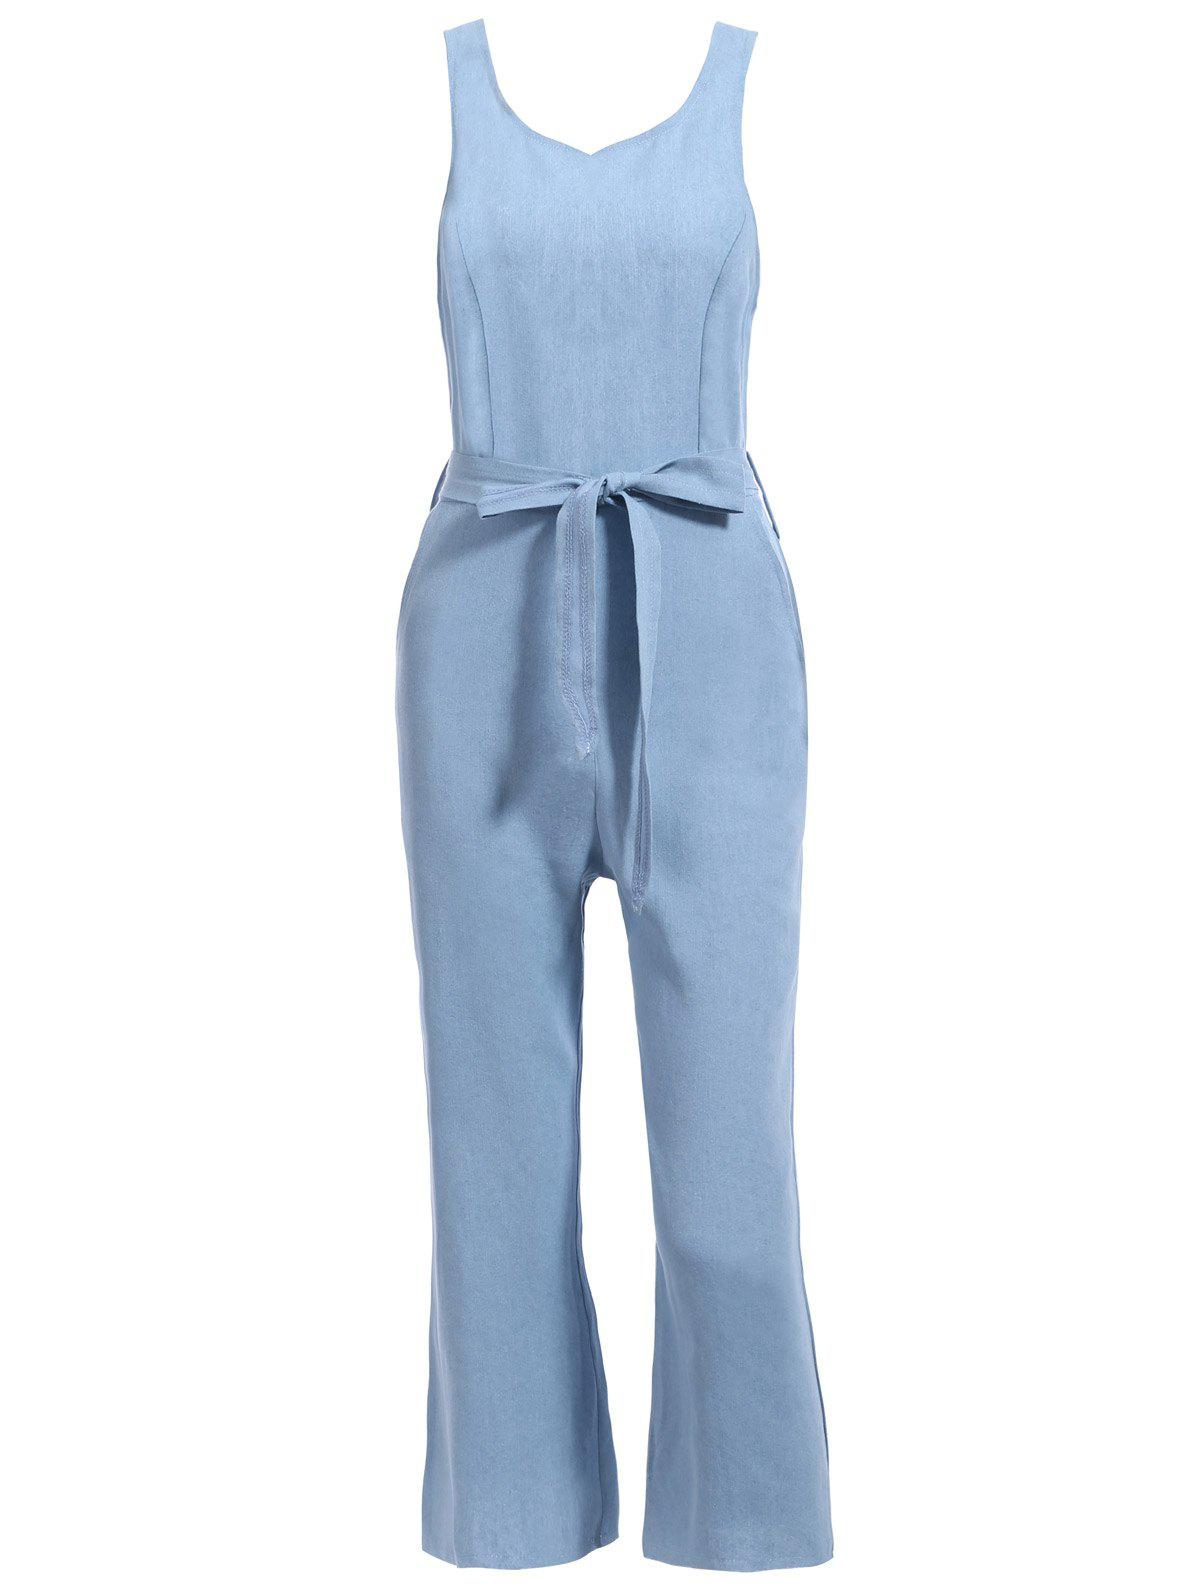 Trendy Round Neck Sleeveless Denim Jumpsuit For Women